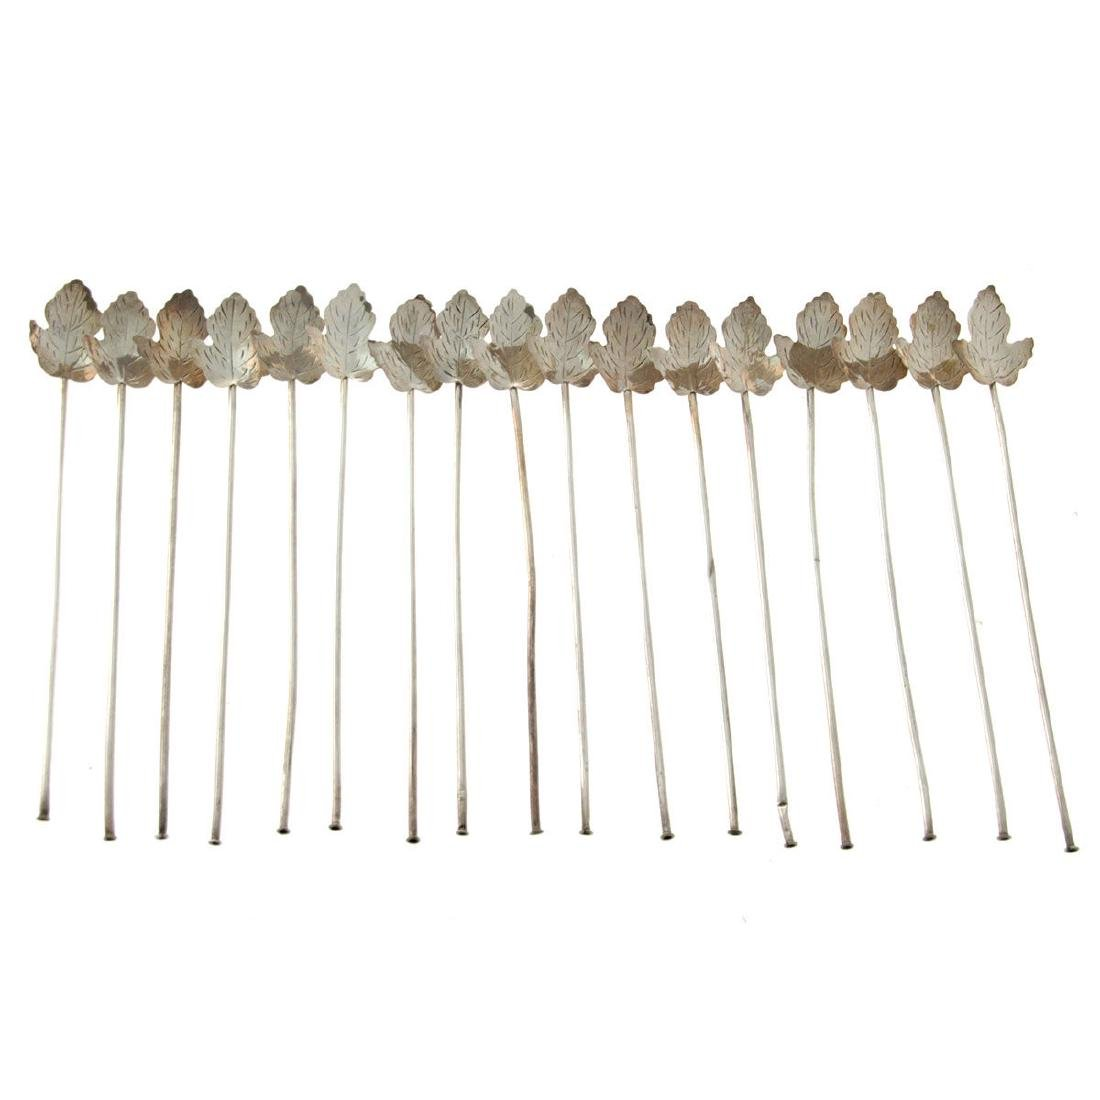 17 Mexican Sterling Silver Straws Stirrers.